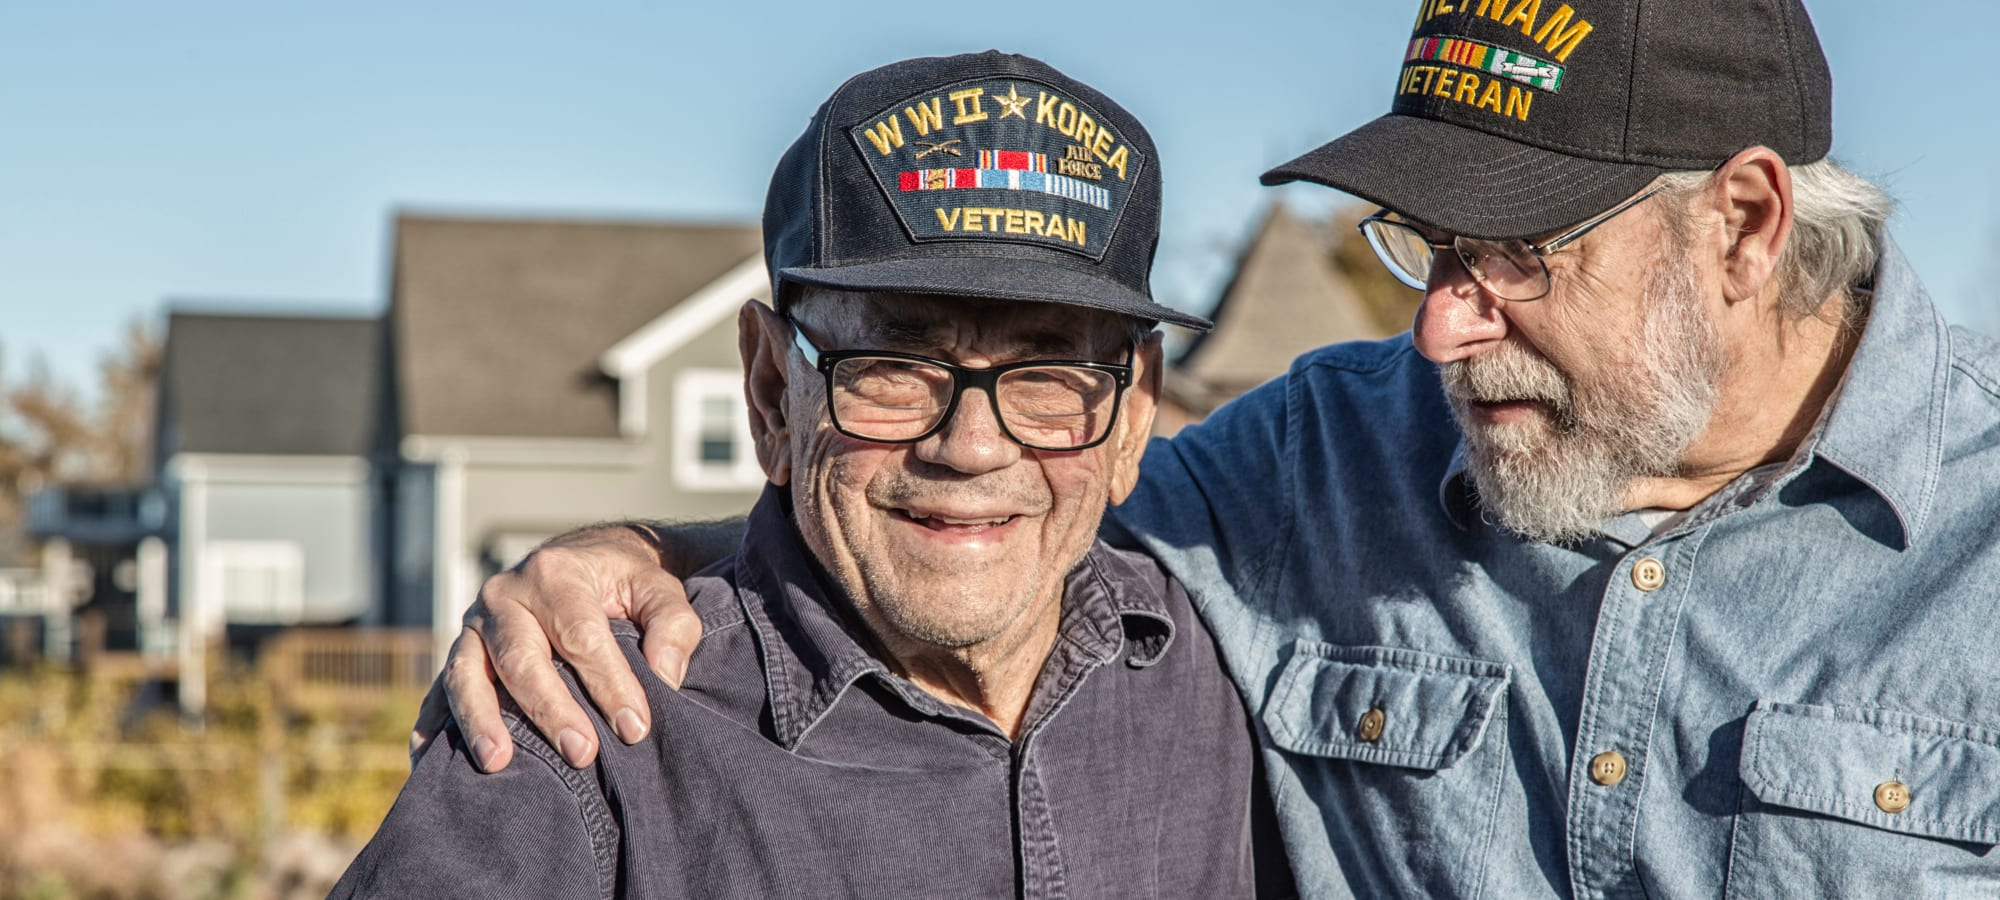 Two veterans embracing, Korean War hat